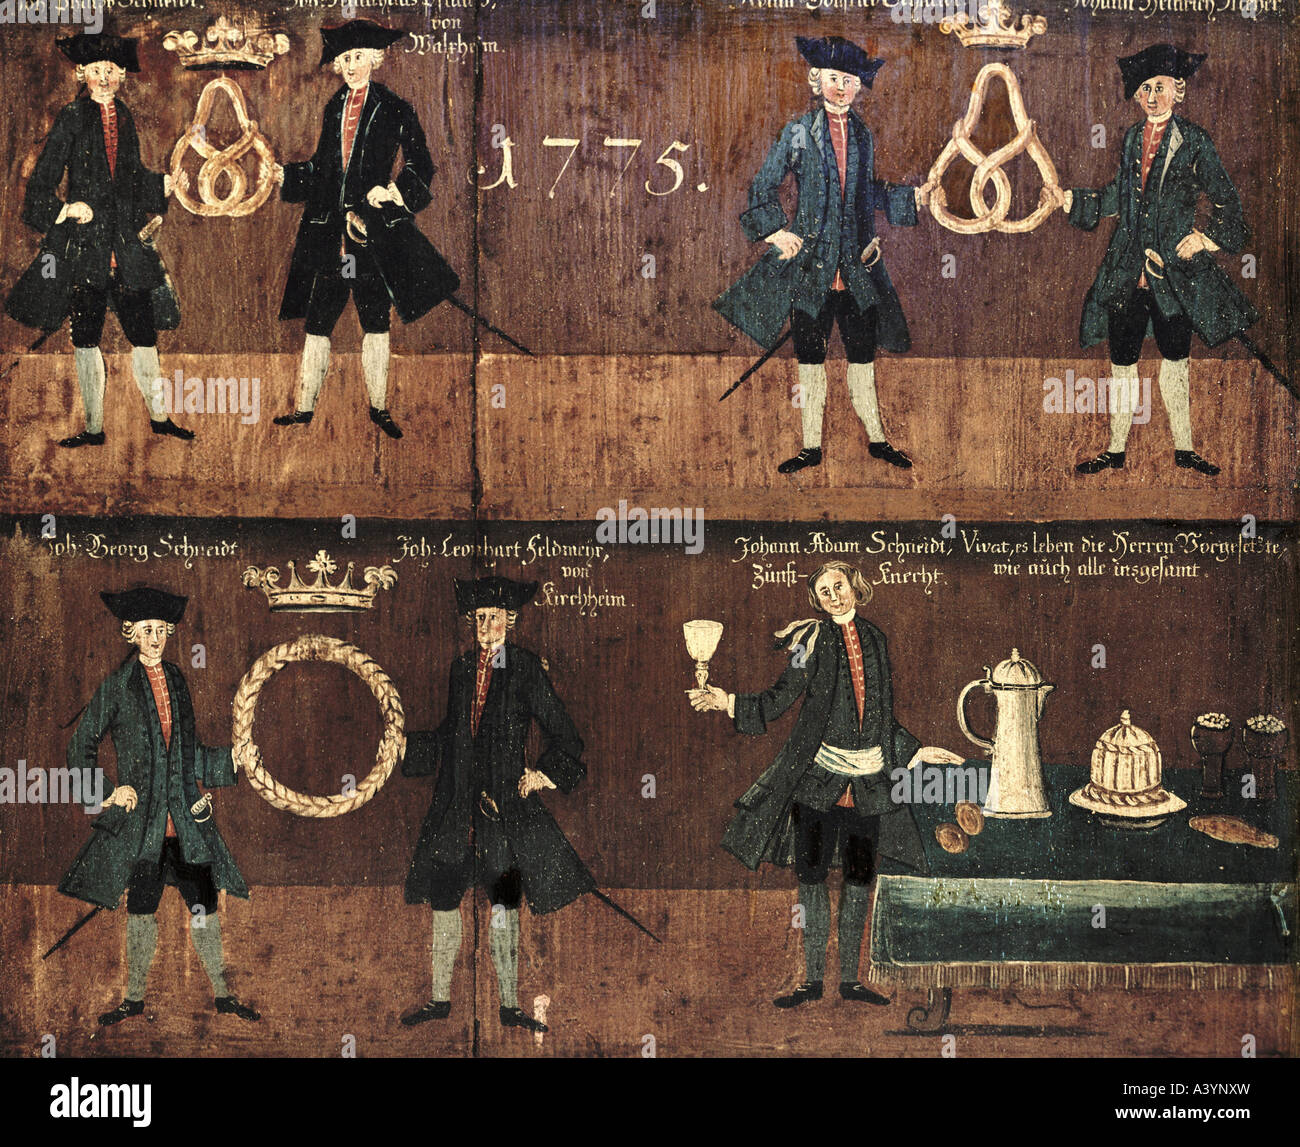 craft / handcraft, guilds, guild sign, baker guild, casein colours on panel, Bavarian Swabia, 1775, Additional-Rights - Stock Image